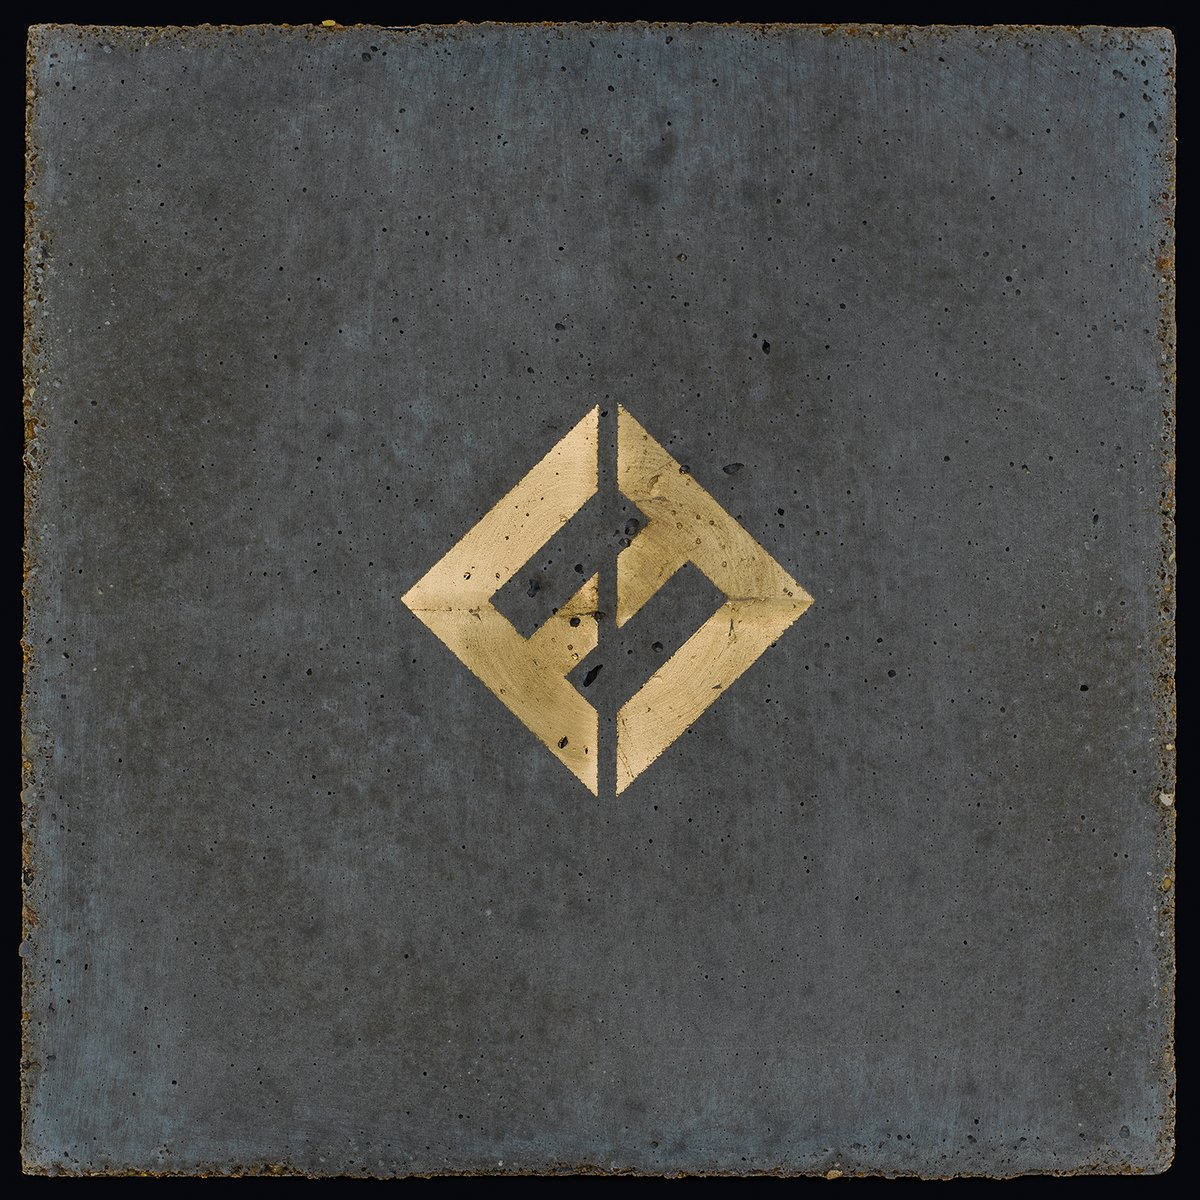 album_concreteandgold.jpeg novo álbum do foo fighters Novo álbum do Foo Fighters album concreteandgold 1